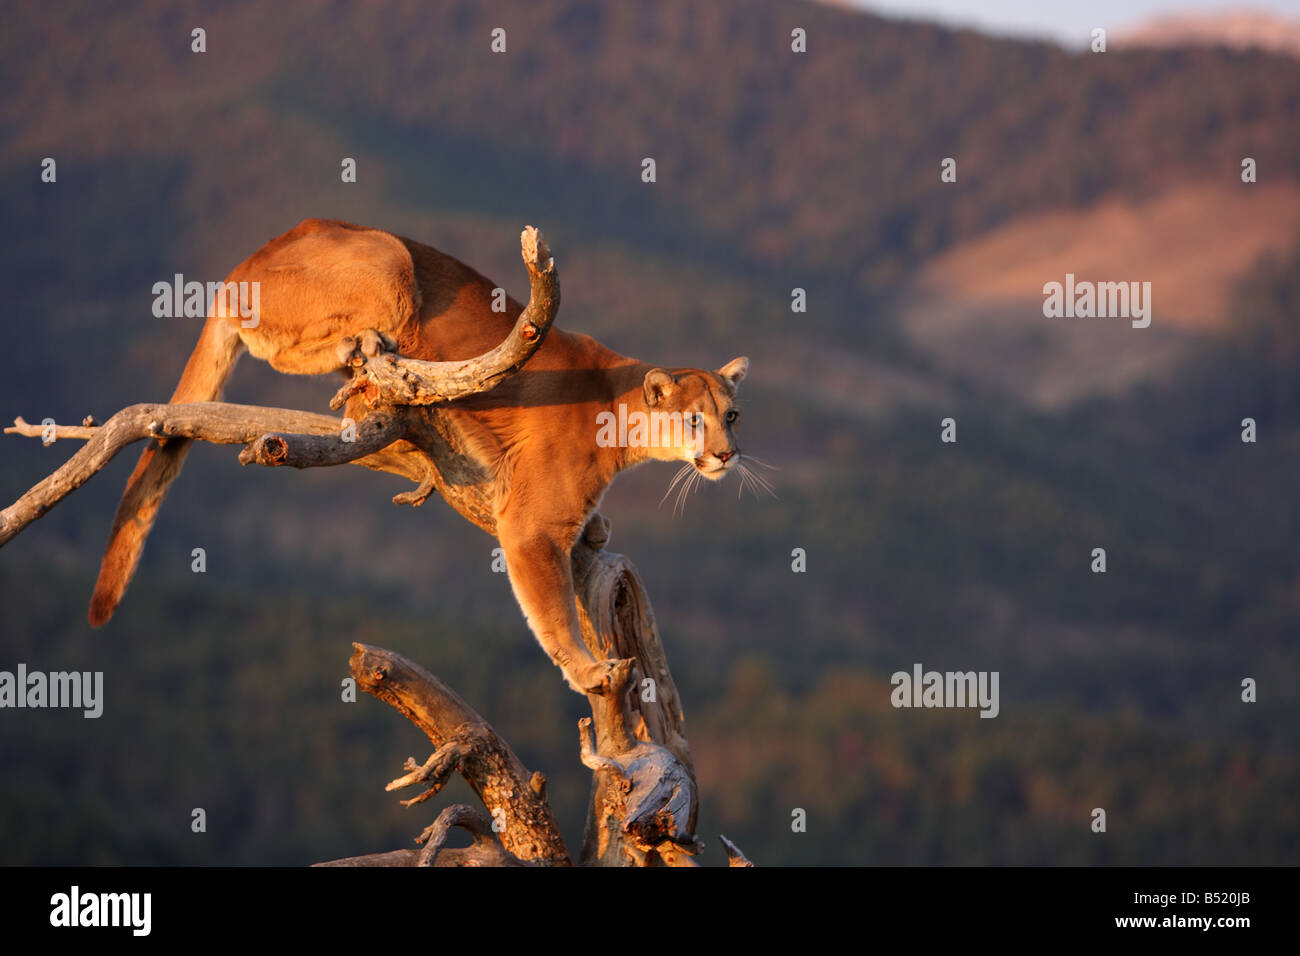 Mountain lion, cougar, puma, in tree in early morning light - Stock Image